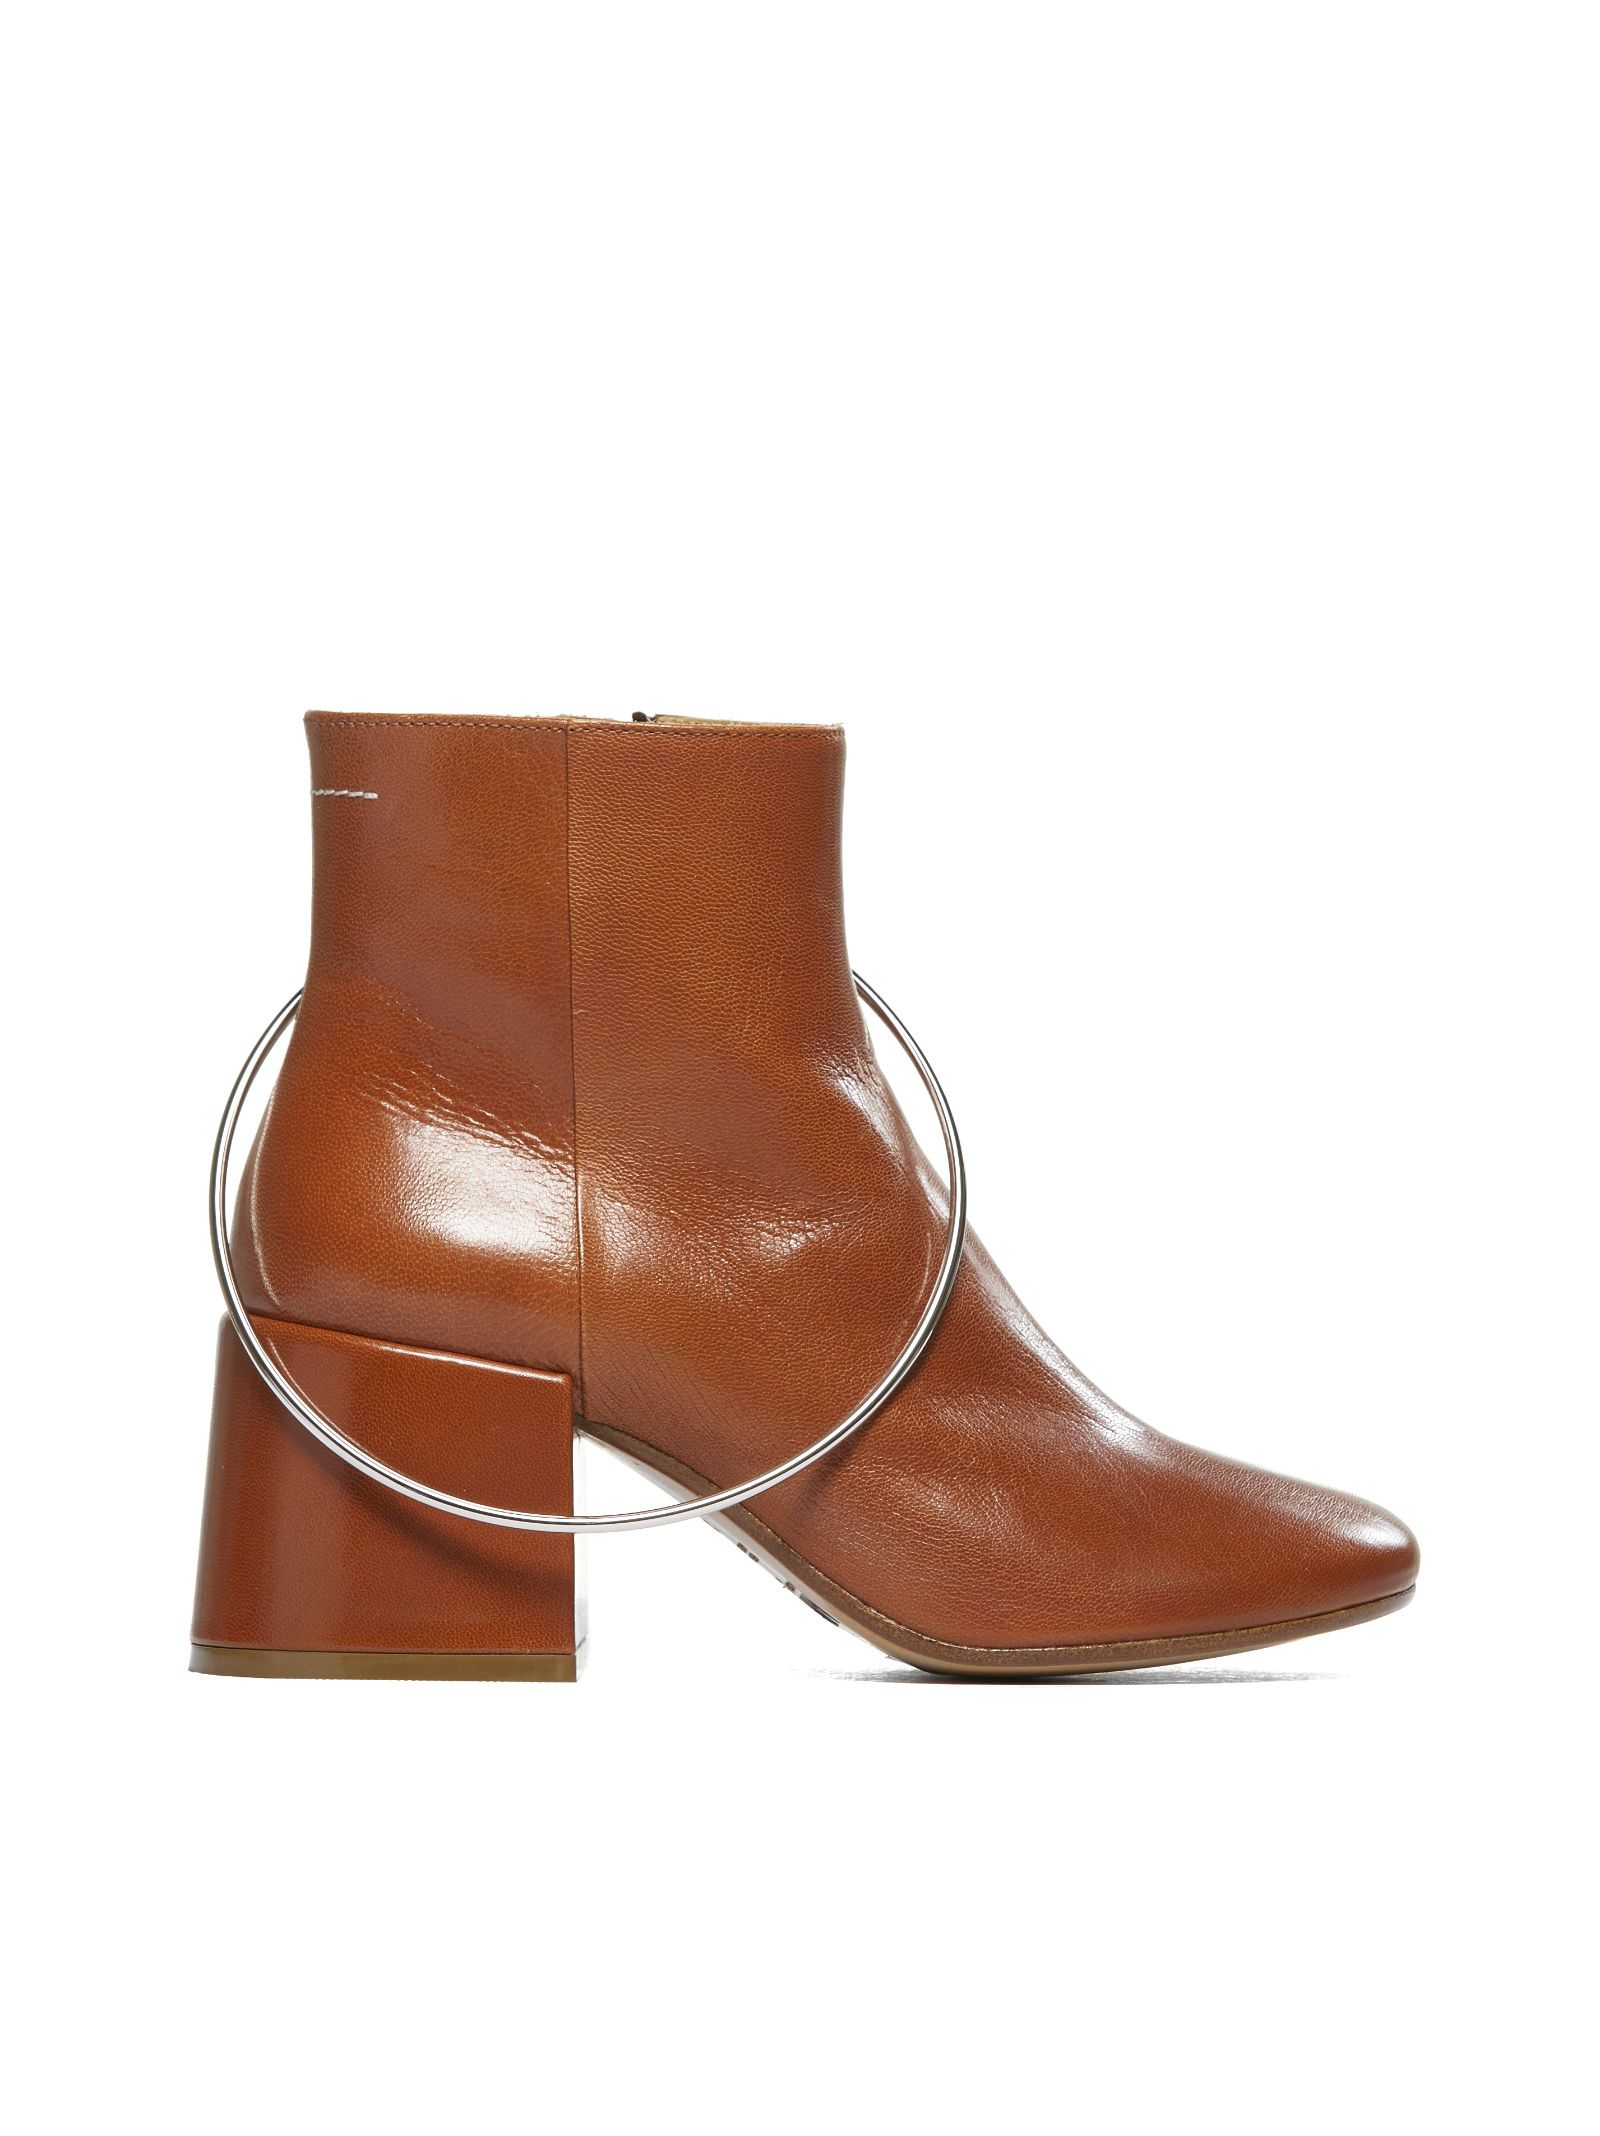 Mm6 Maison Margiela Oversized Ring Ankle Boots in Cuoio